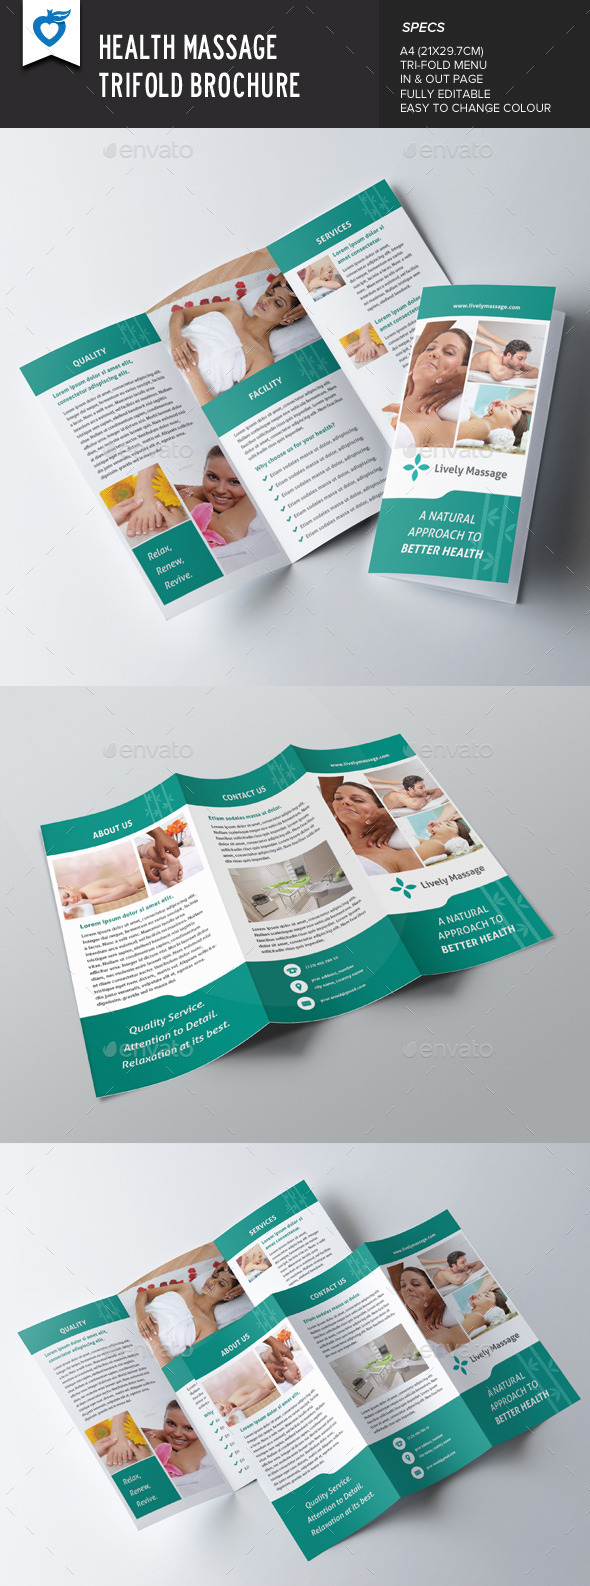 GraphicRiver Health Massage Trifold Brochure 9124689